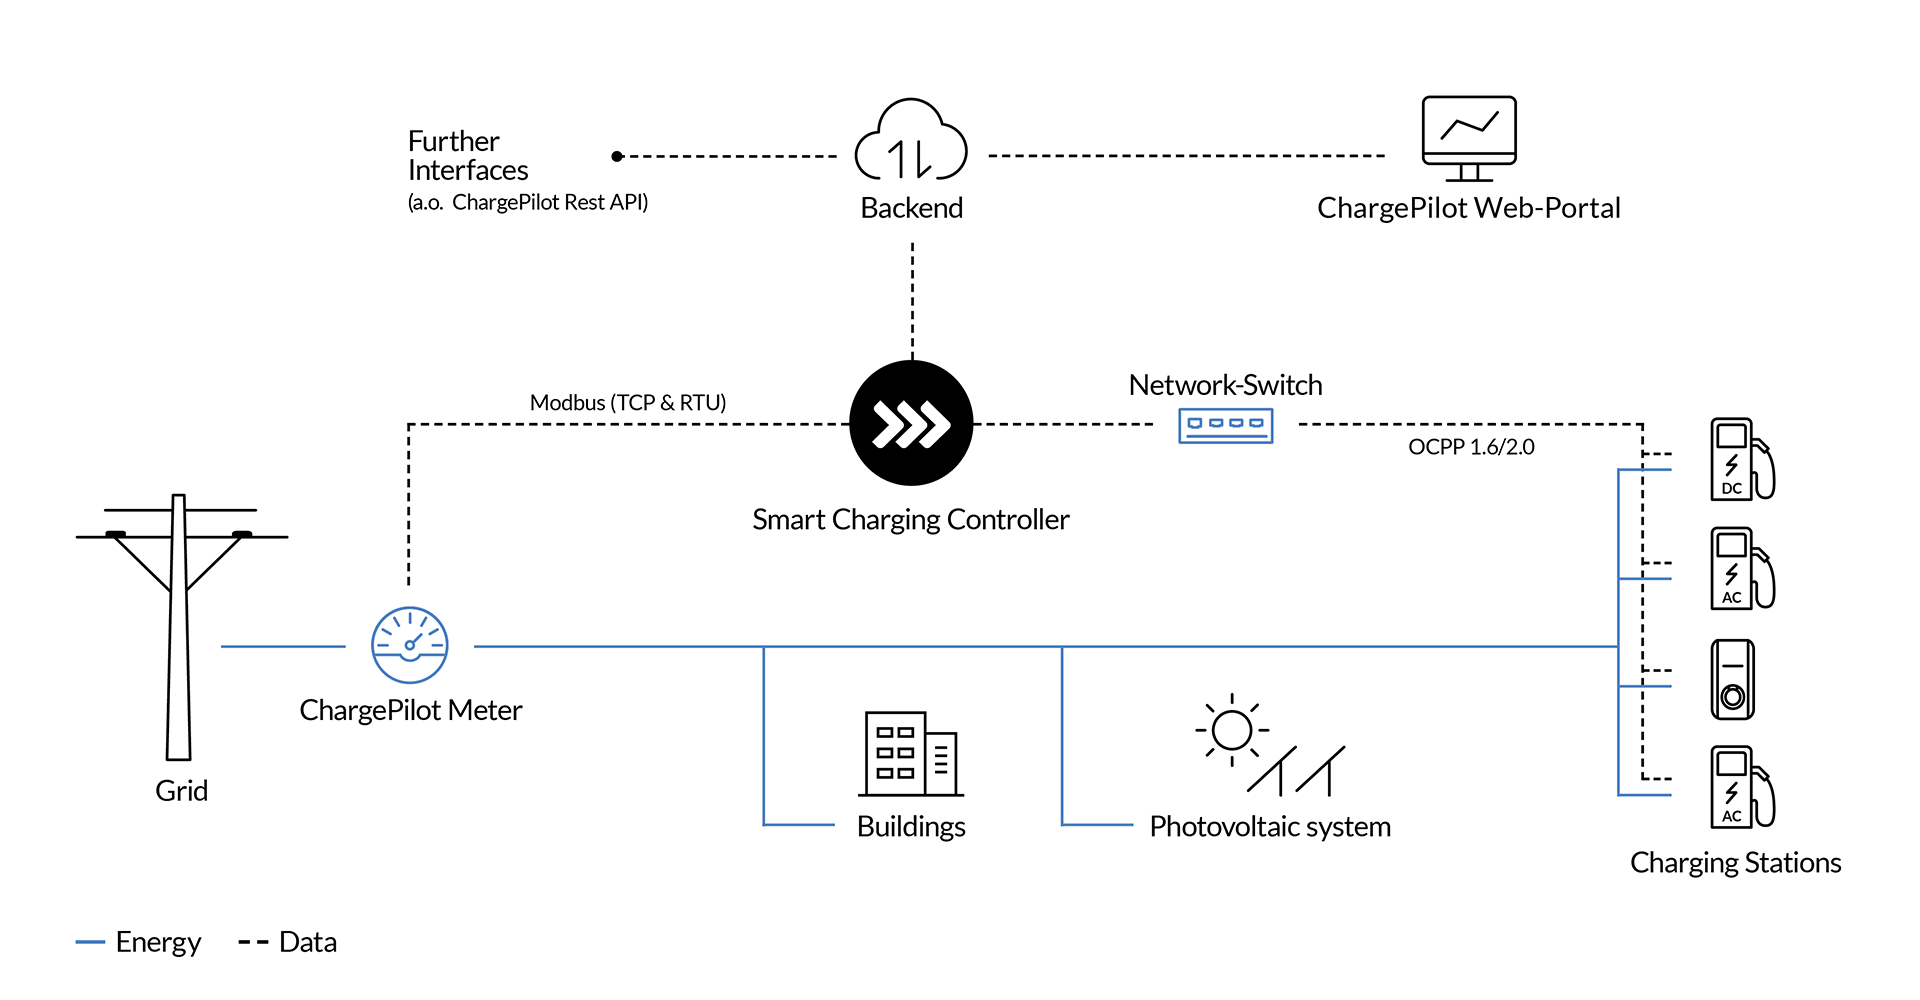 ChargePilot - Interplay between hardware and software